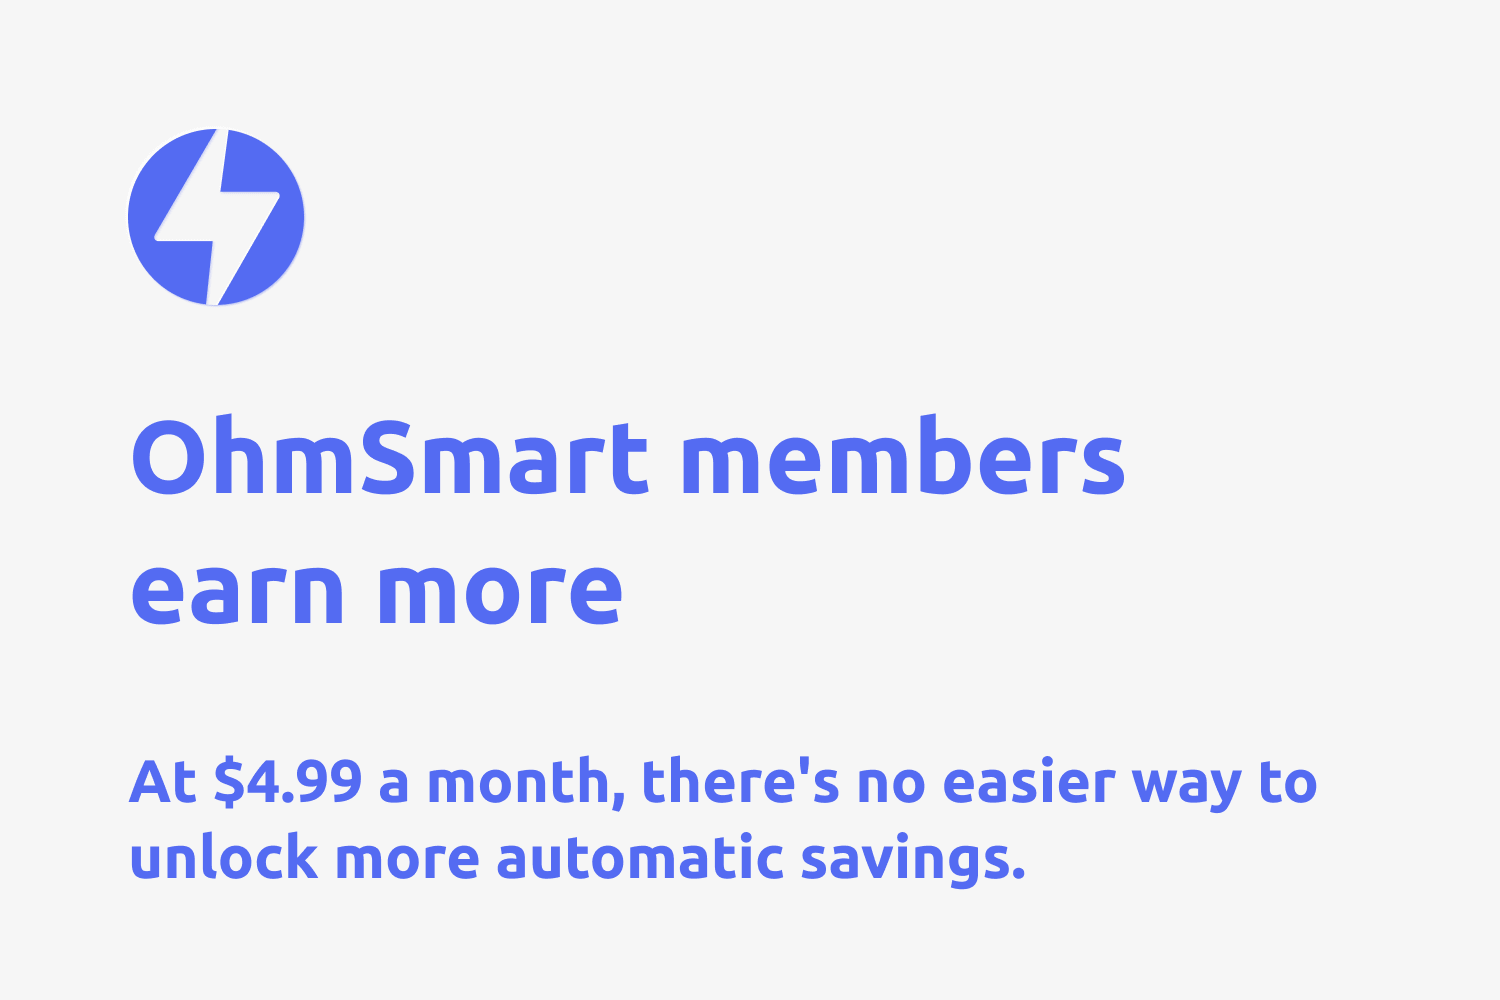 white image with blue text explaining OhmSmart, the new feature of OhmConnect